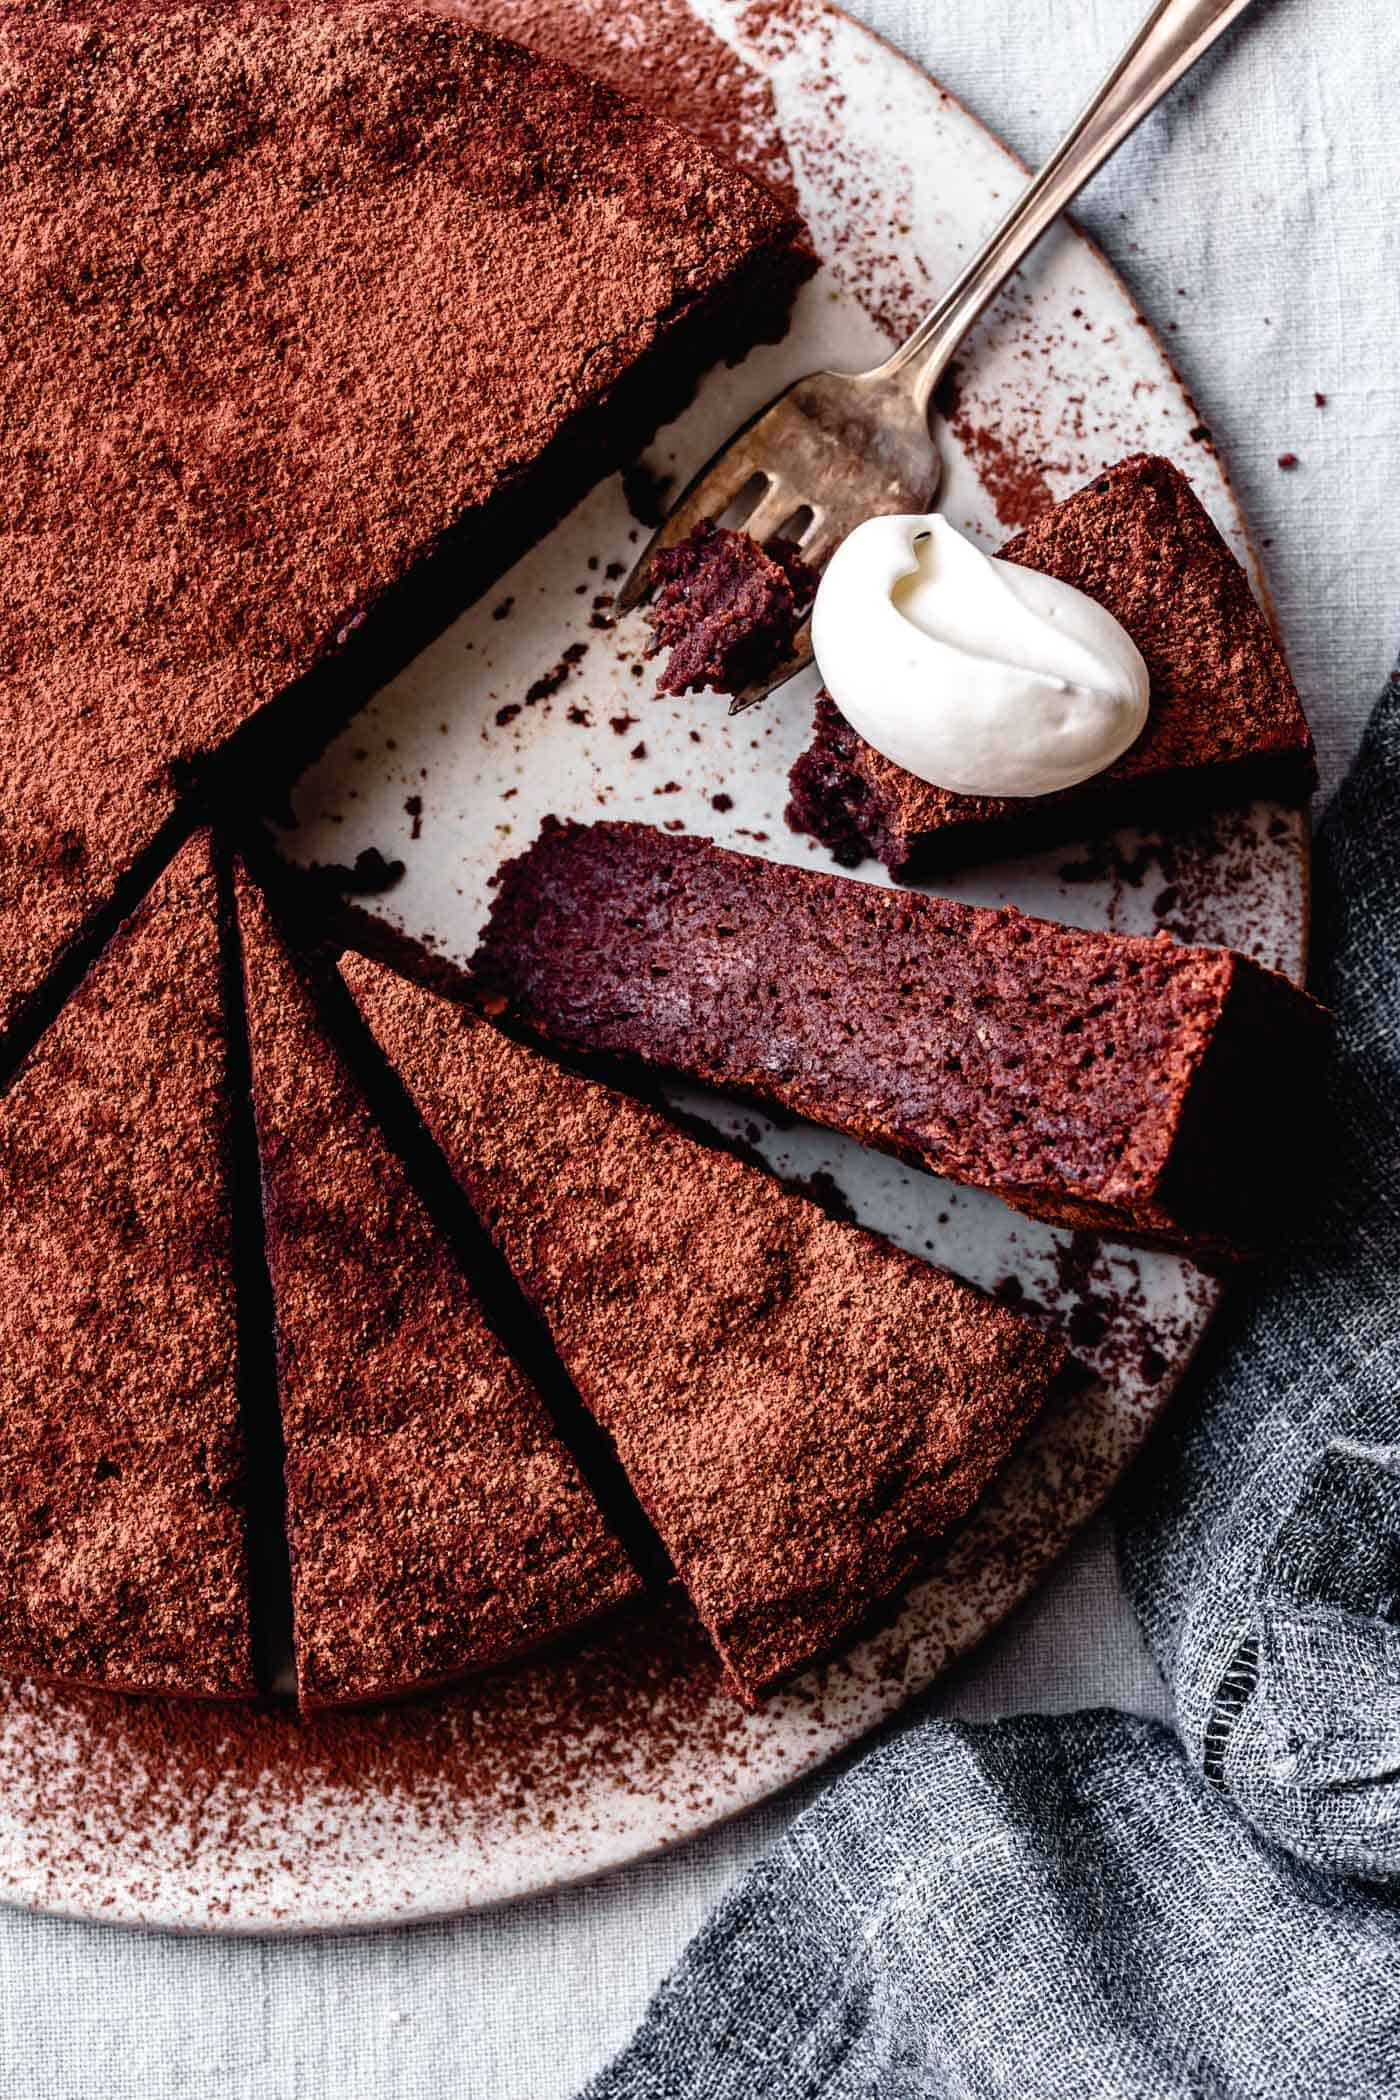 almond flour chocolate cake recipe, sliced on a serving board with whipped cream